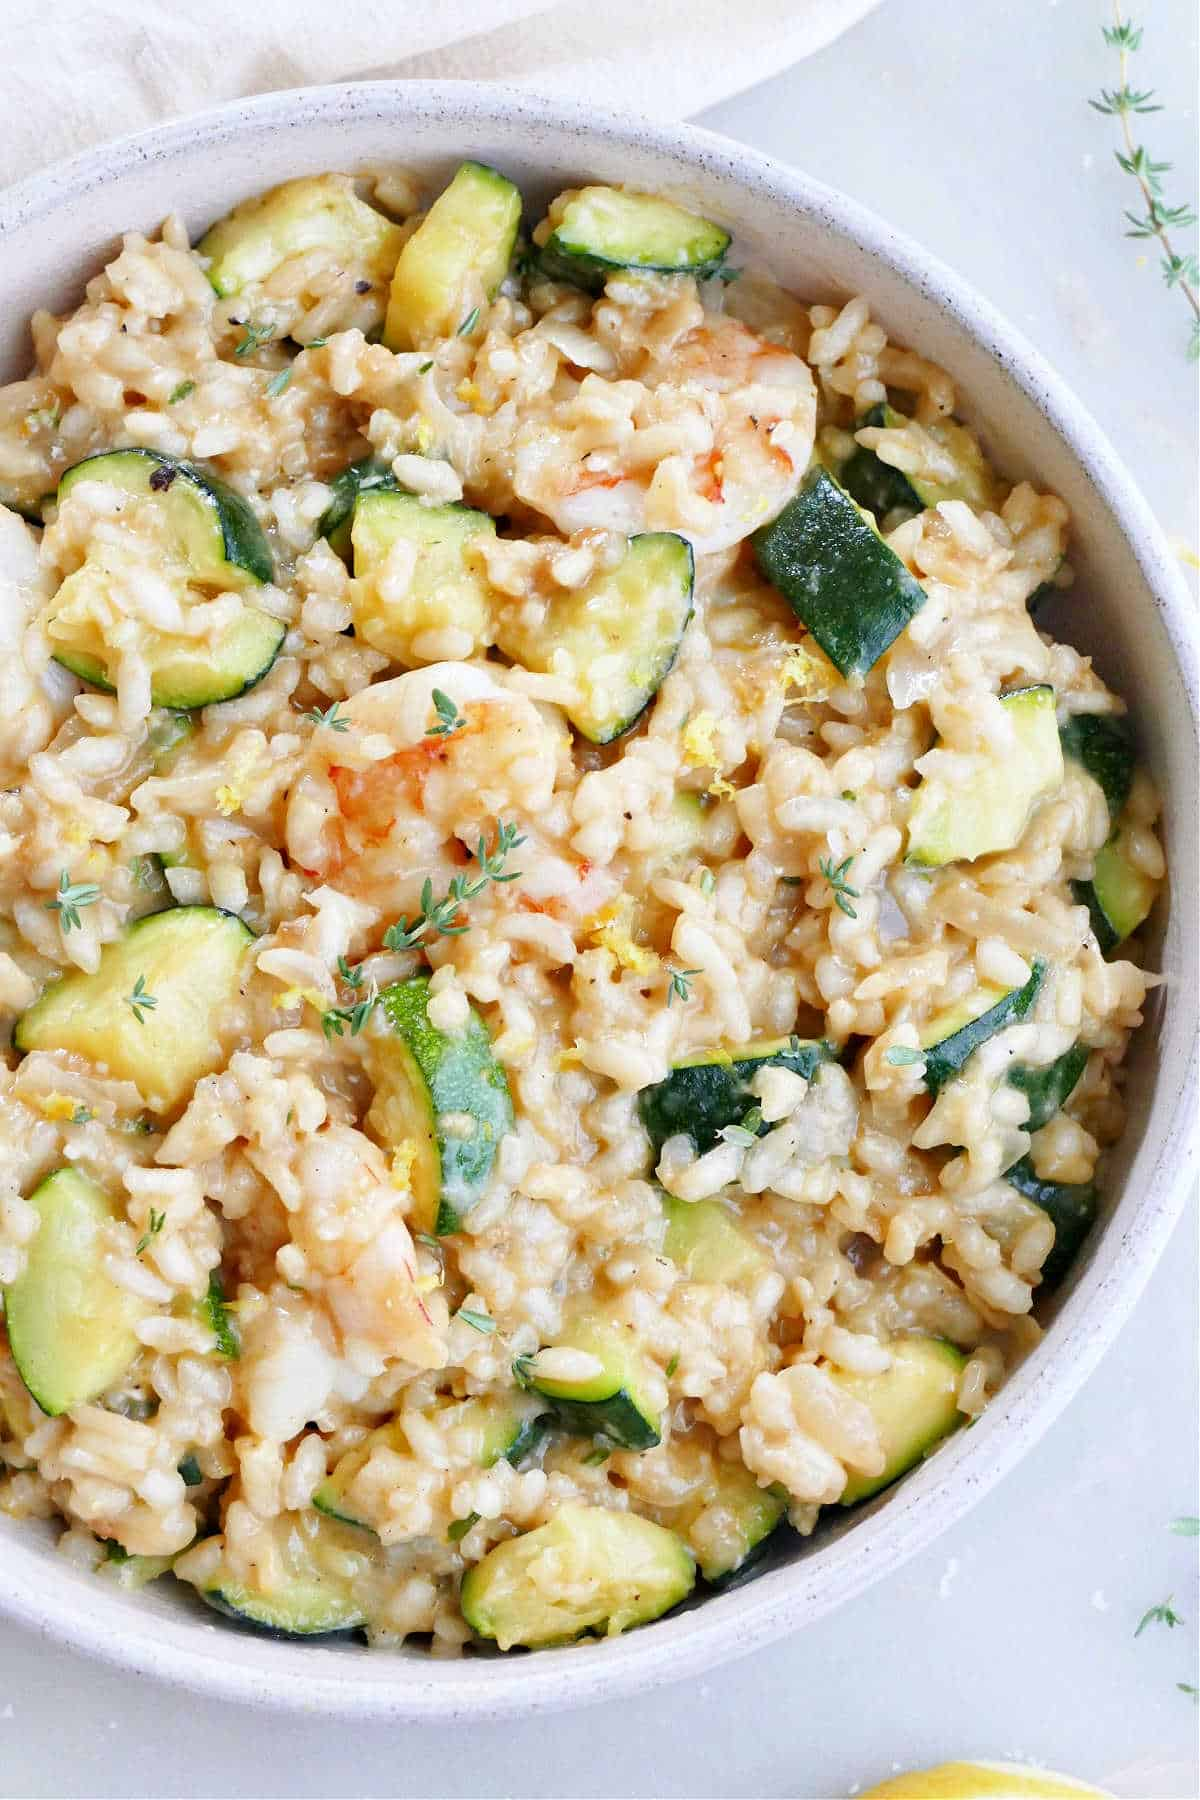 zucchini and shrimp risotto in a serving bowl on a counter